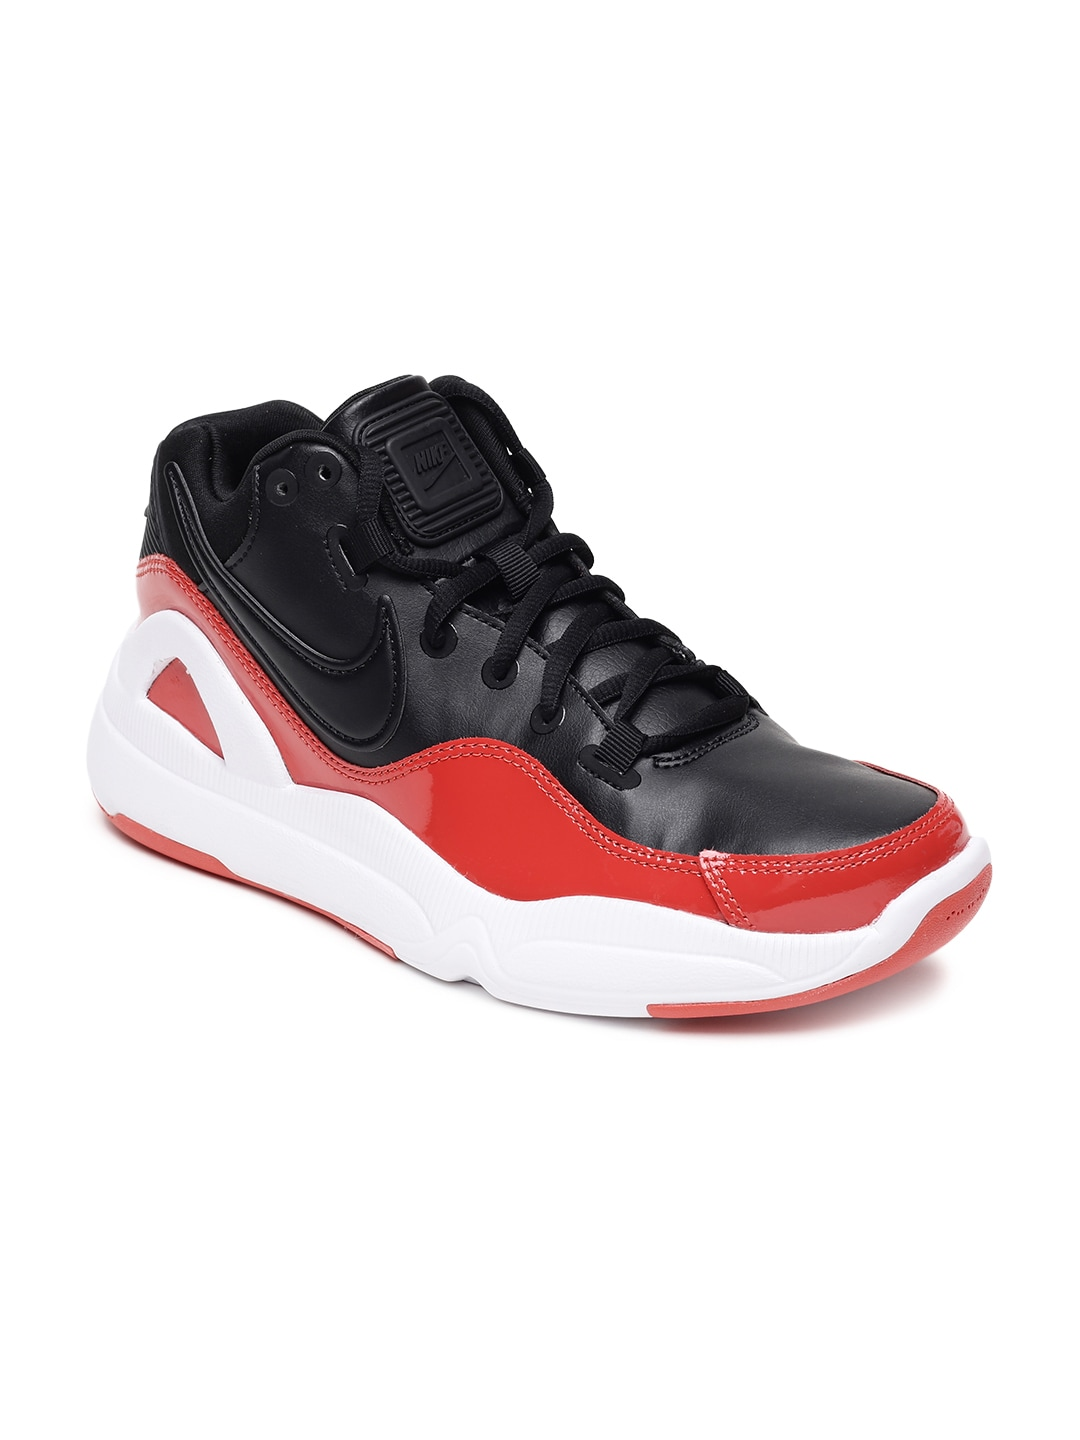 0e2102d65f19 Nike Shoes - Buy Nike Shoes for Men   Women Online